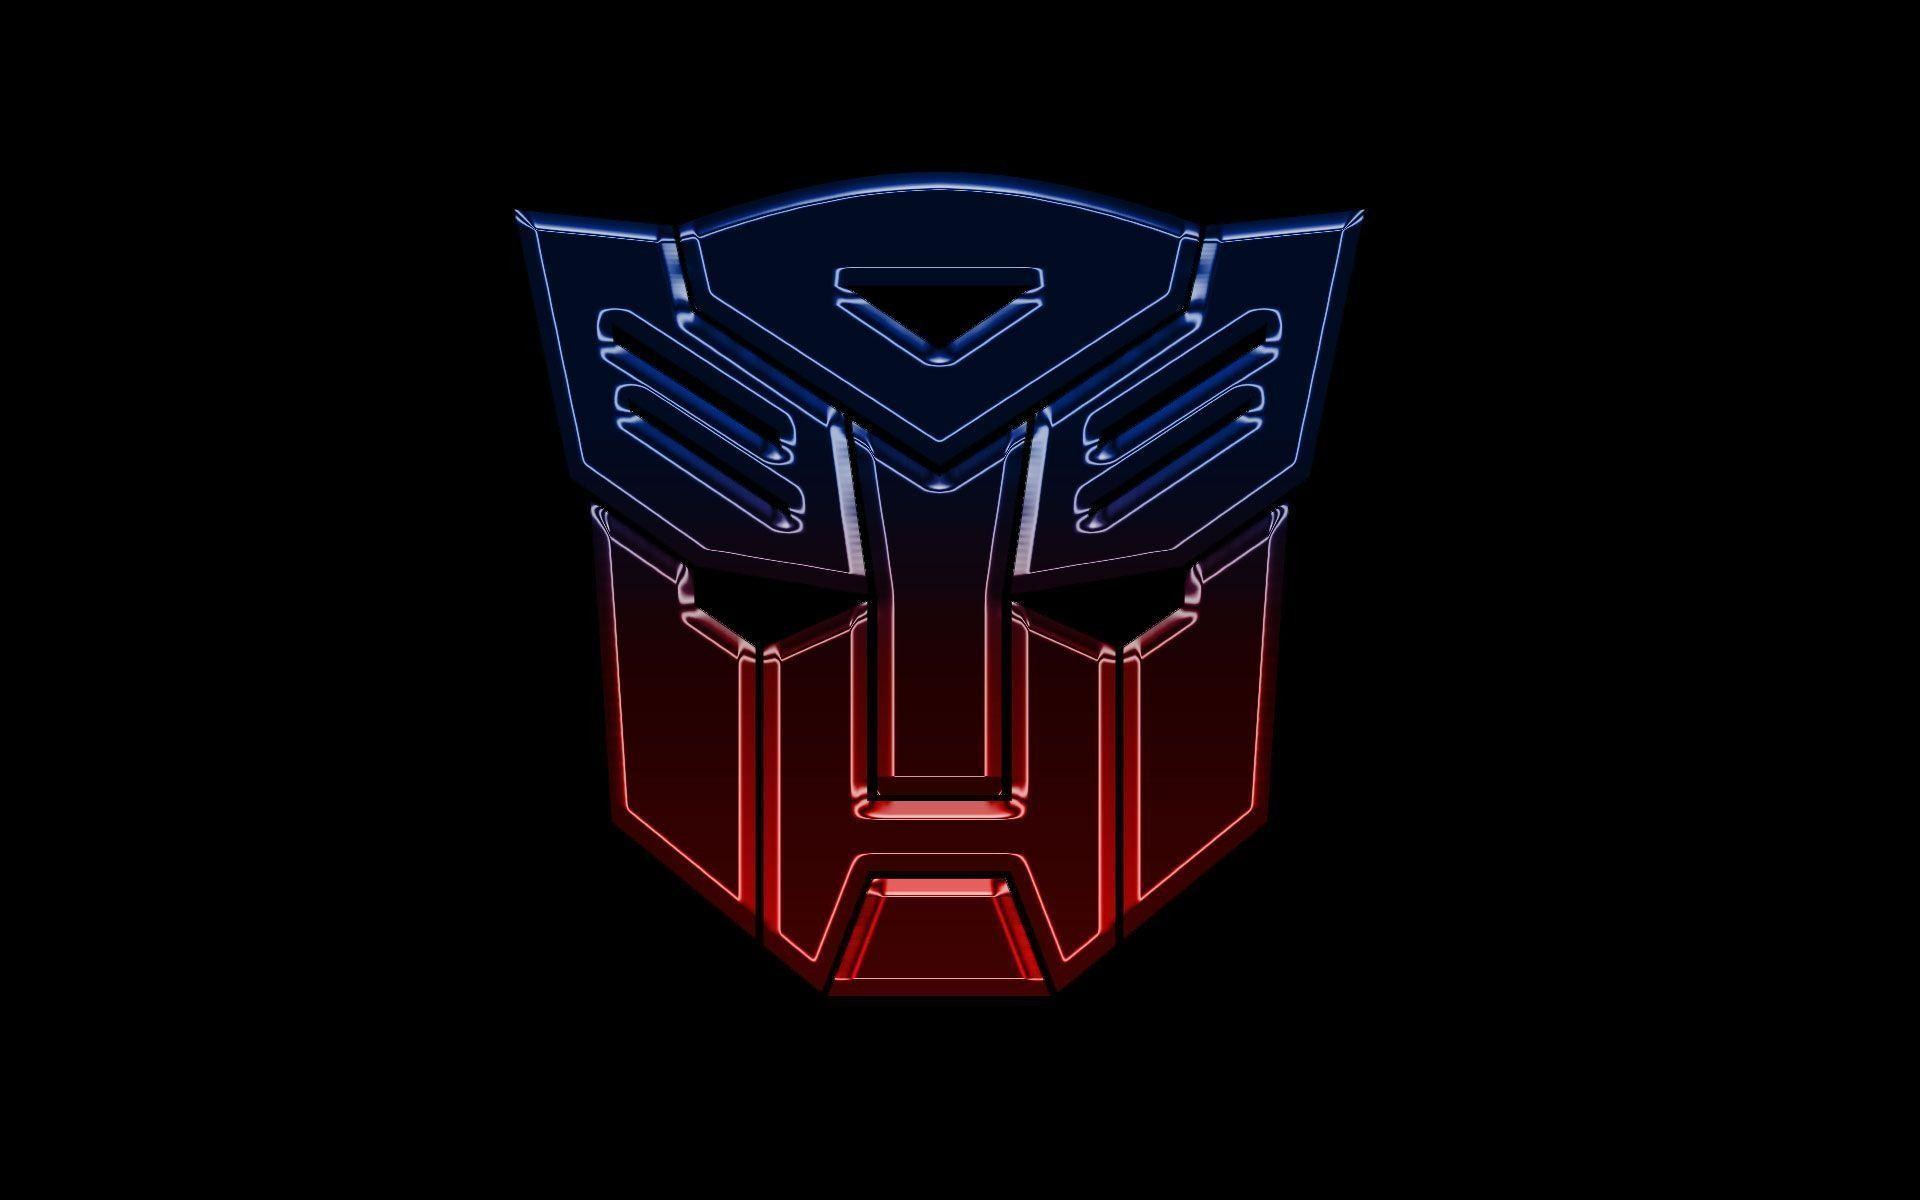 1920x1200 Free Wallpapers - Transformers Autobots Logo wallpaper